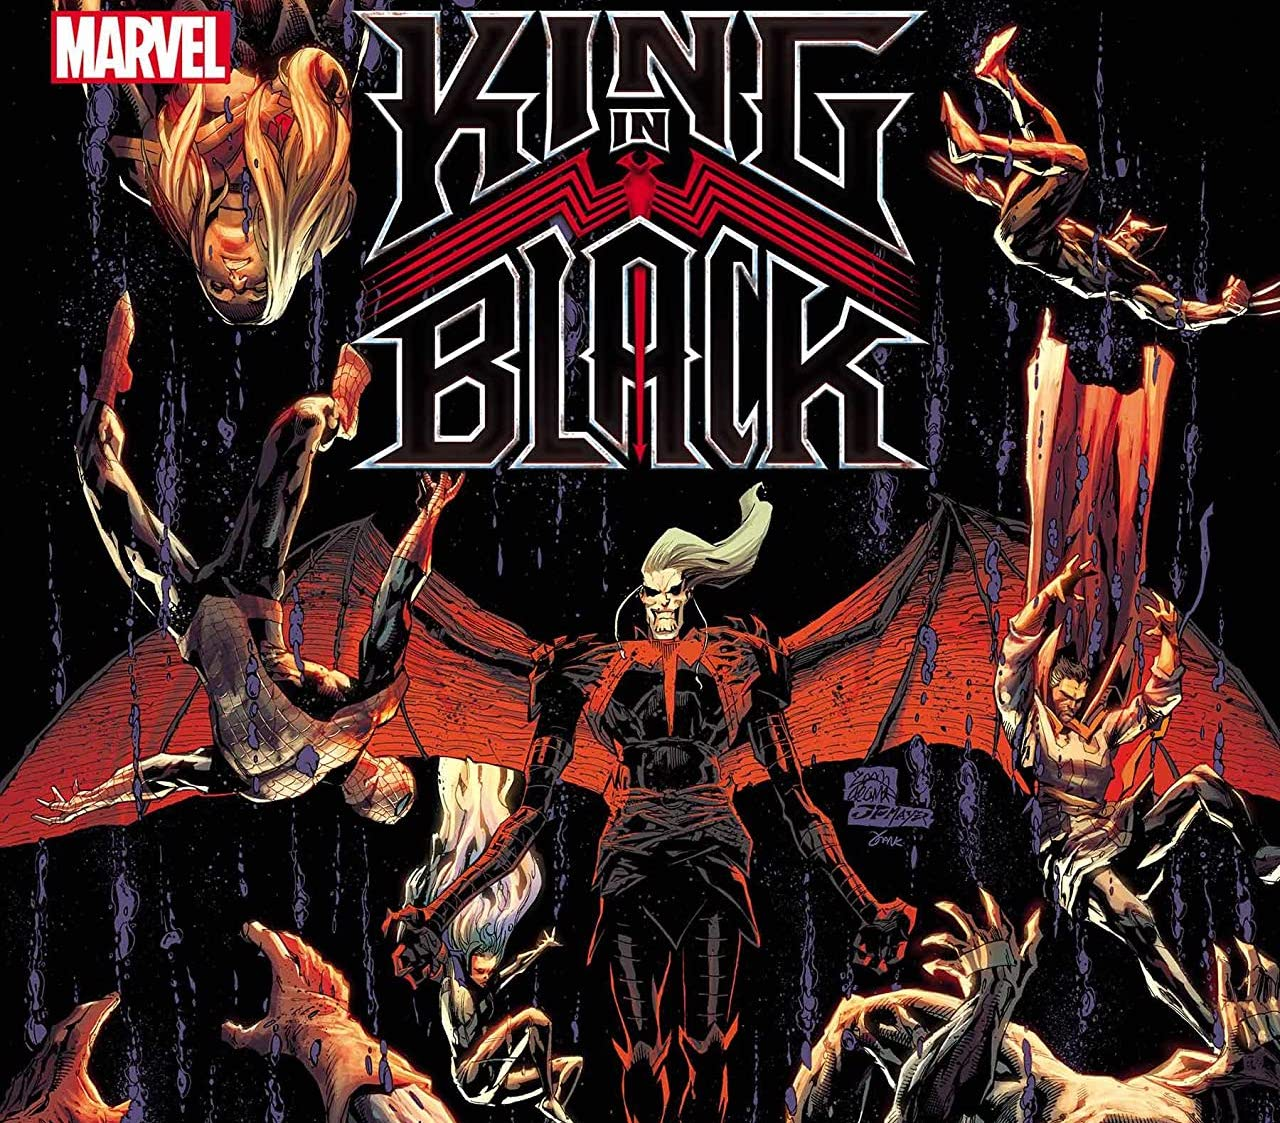 'King in Black' #2 review